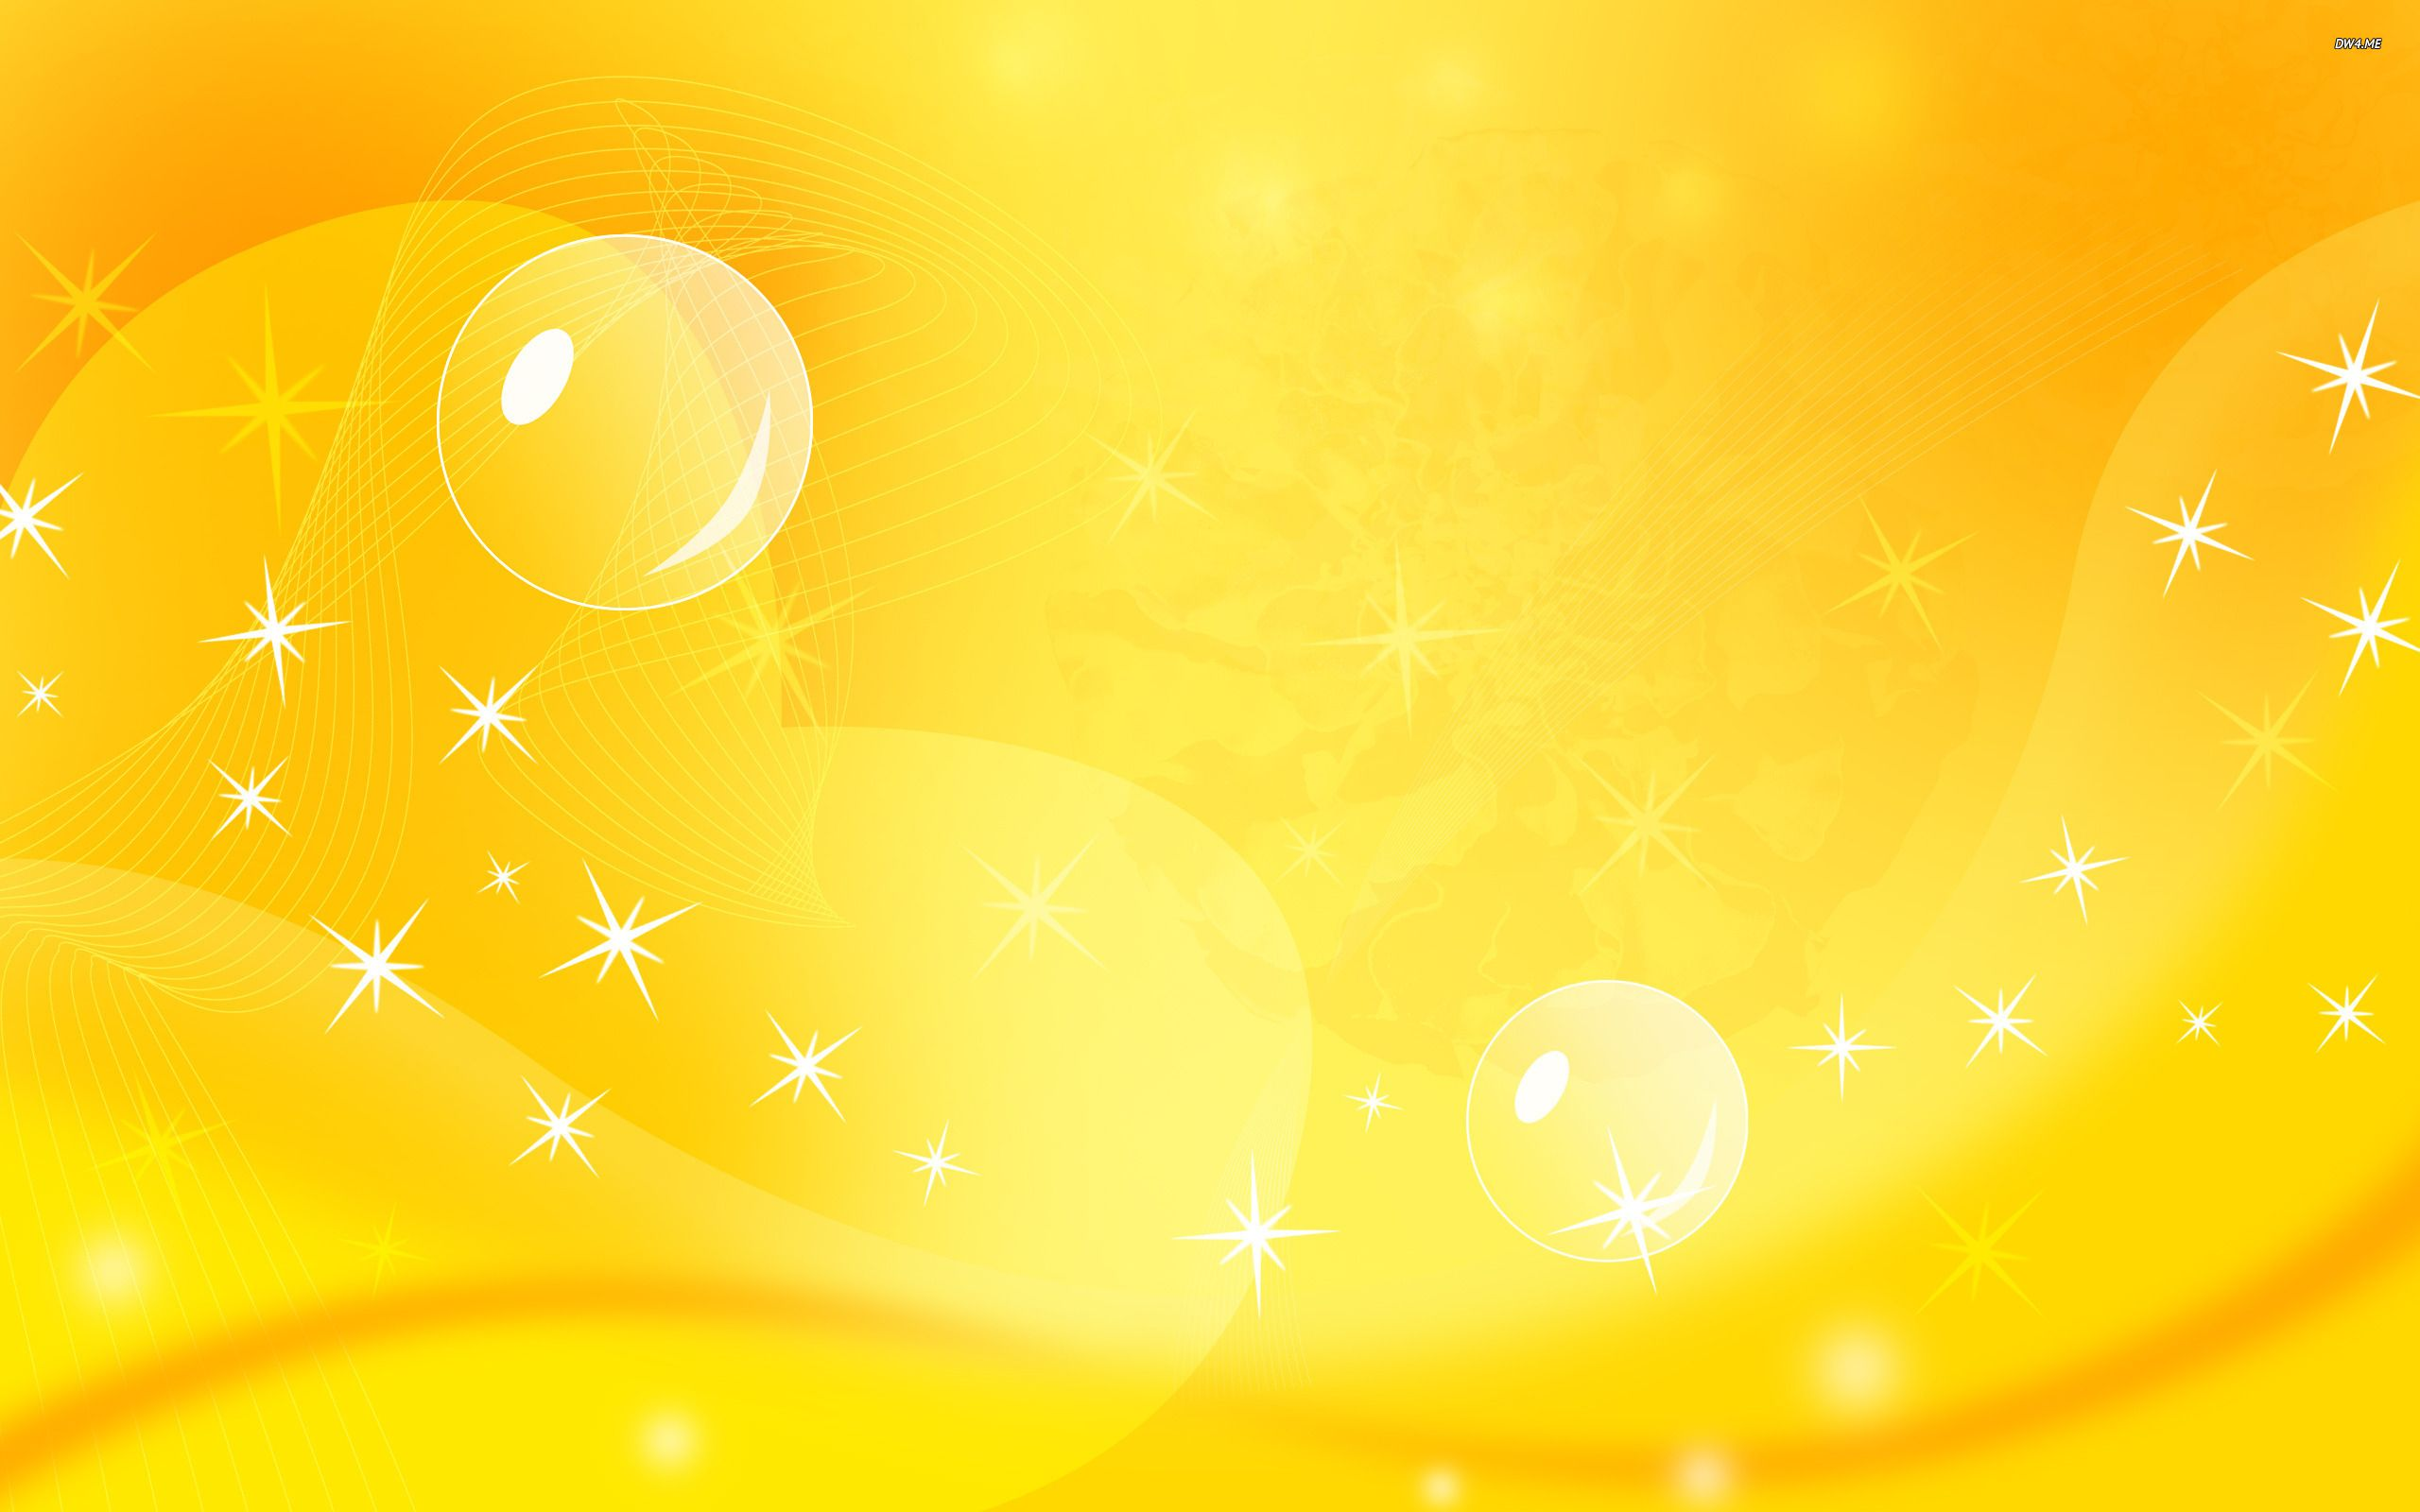 Yellow Wallpapers - Top Free Yellow